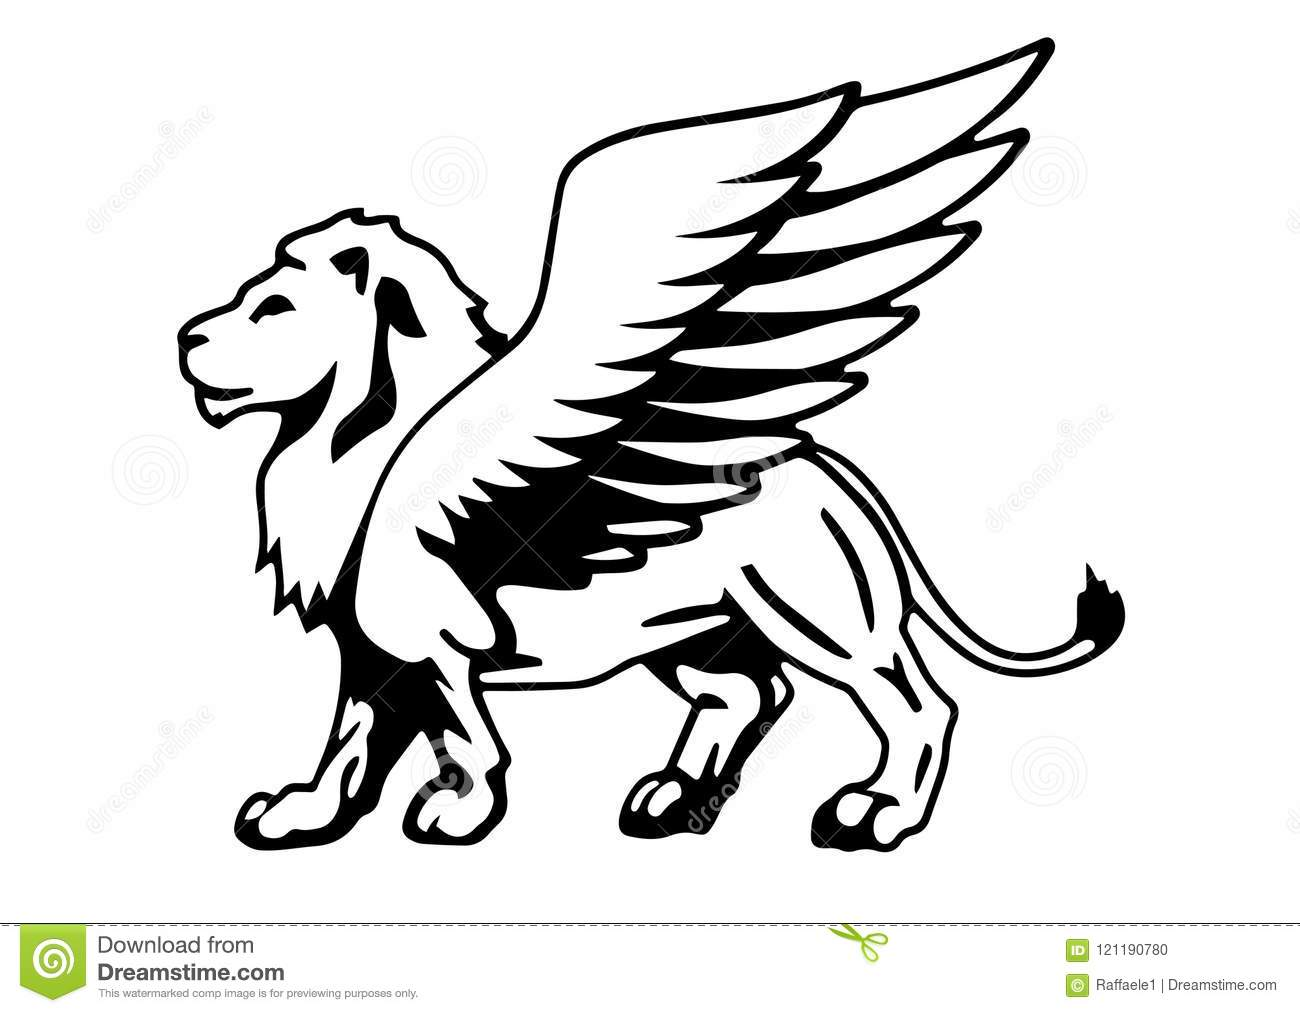 Winged Lion Stock Illustrations 1 383 Winged Lion Stock Illustrations Vectors Clipart Dreamstime Medieval european mythology, legend and folklore. https www dreamstime com winged lion silhouette winged lion silhouette black white vector format aviable ai image121190780